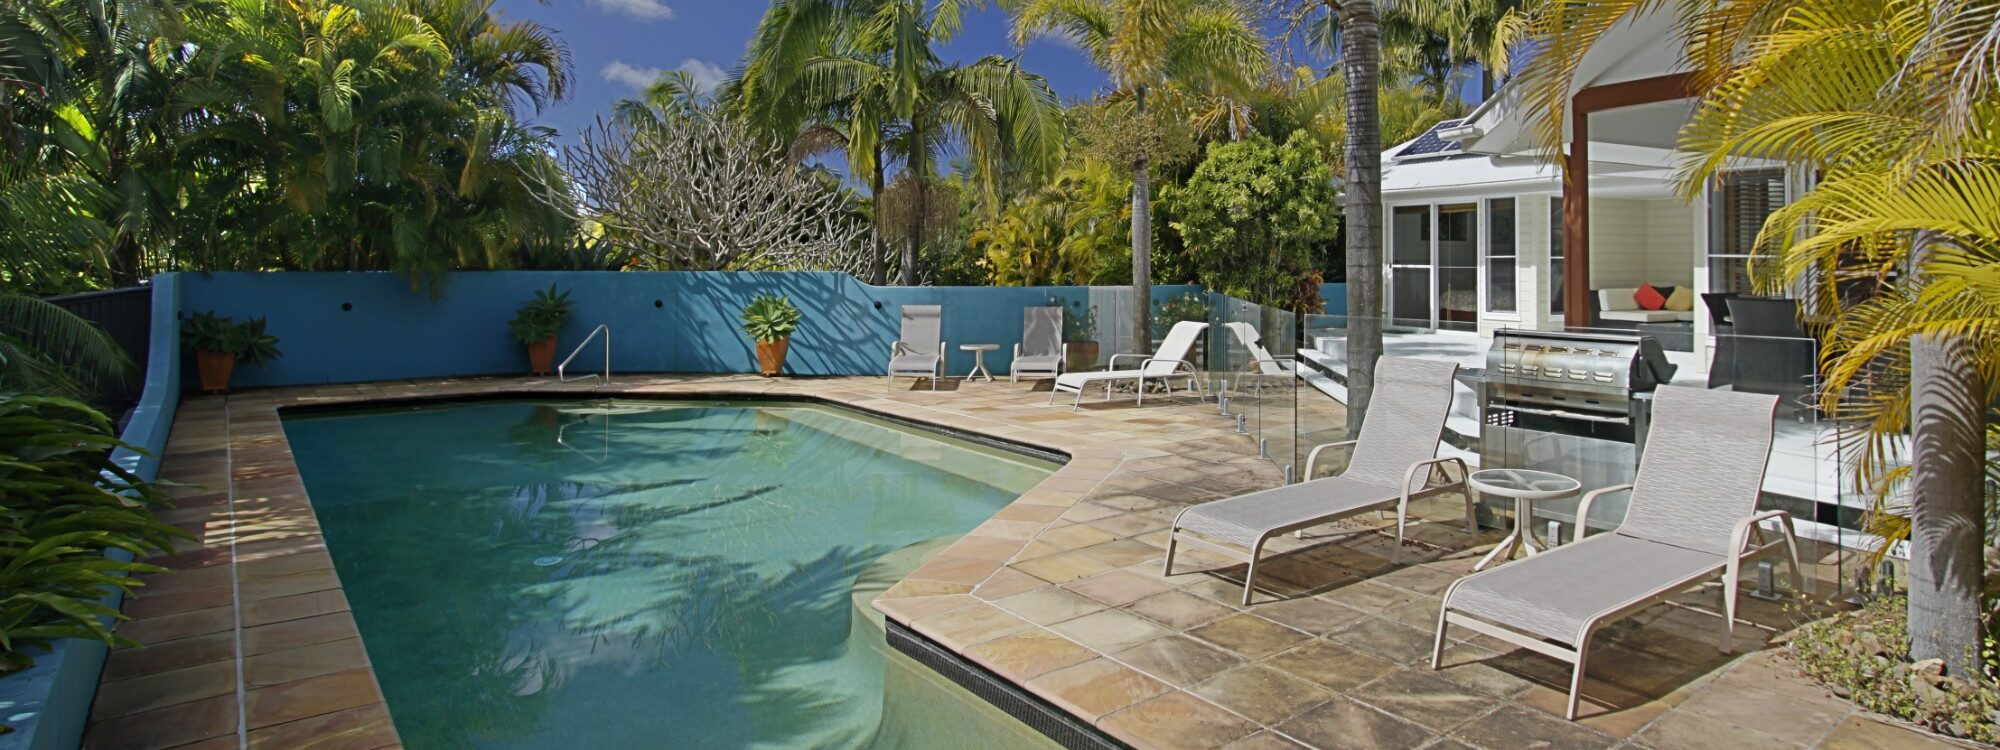 Abode at Byron - Pool Area